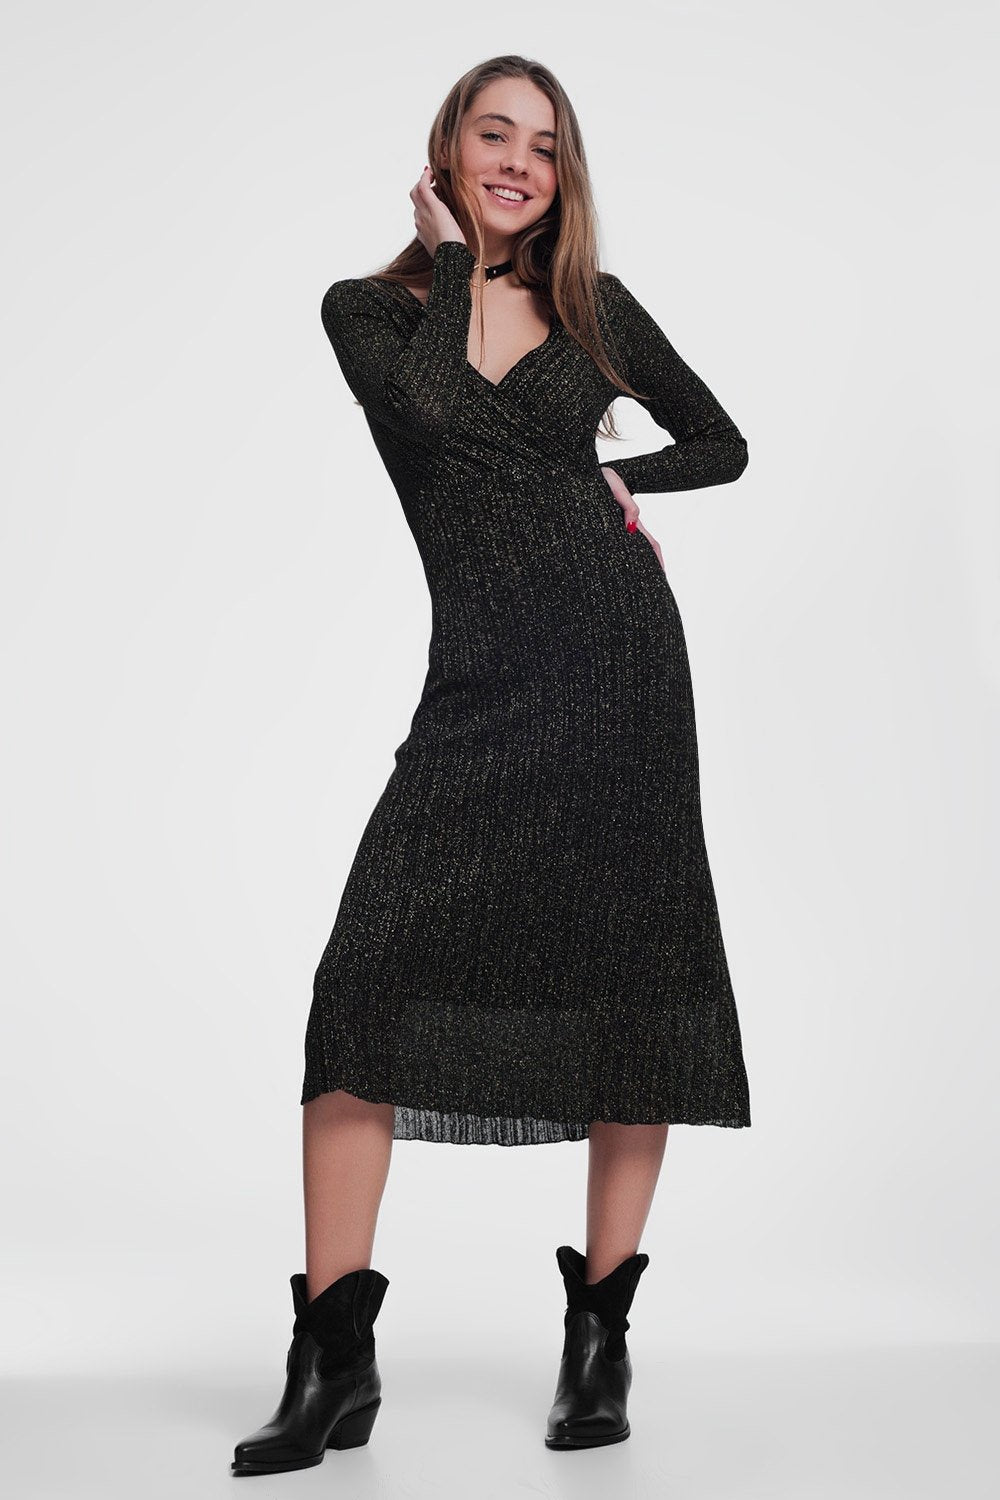 Dress in Black With V-Neck and Long Sleeves - KATANA FASHION BOUTIQUE